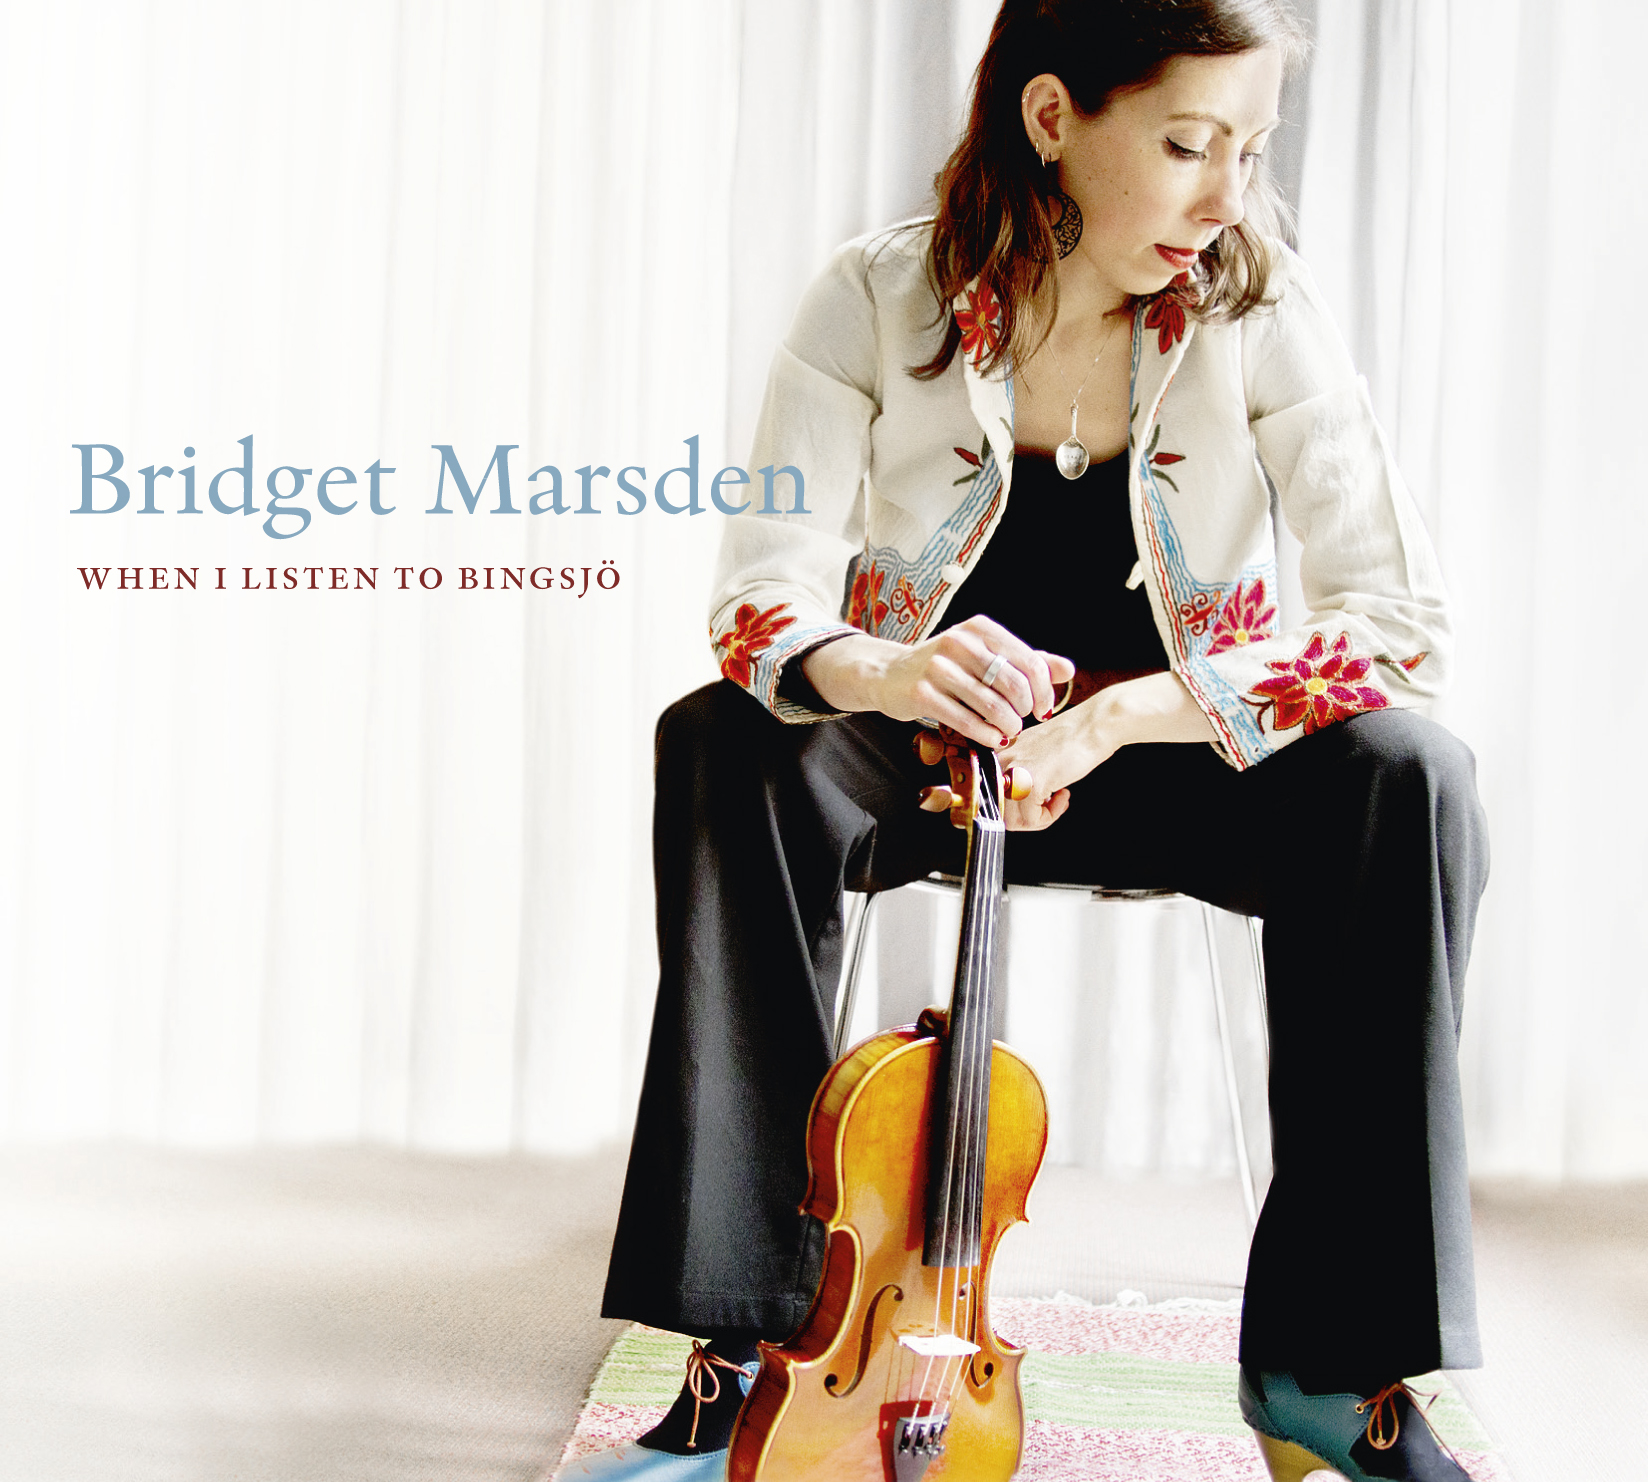 When I Listen To Bingsjö by Bridget Marsden_album cover